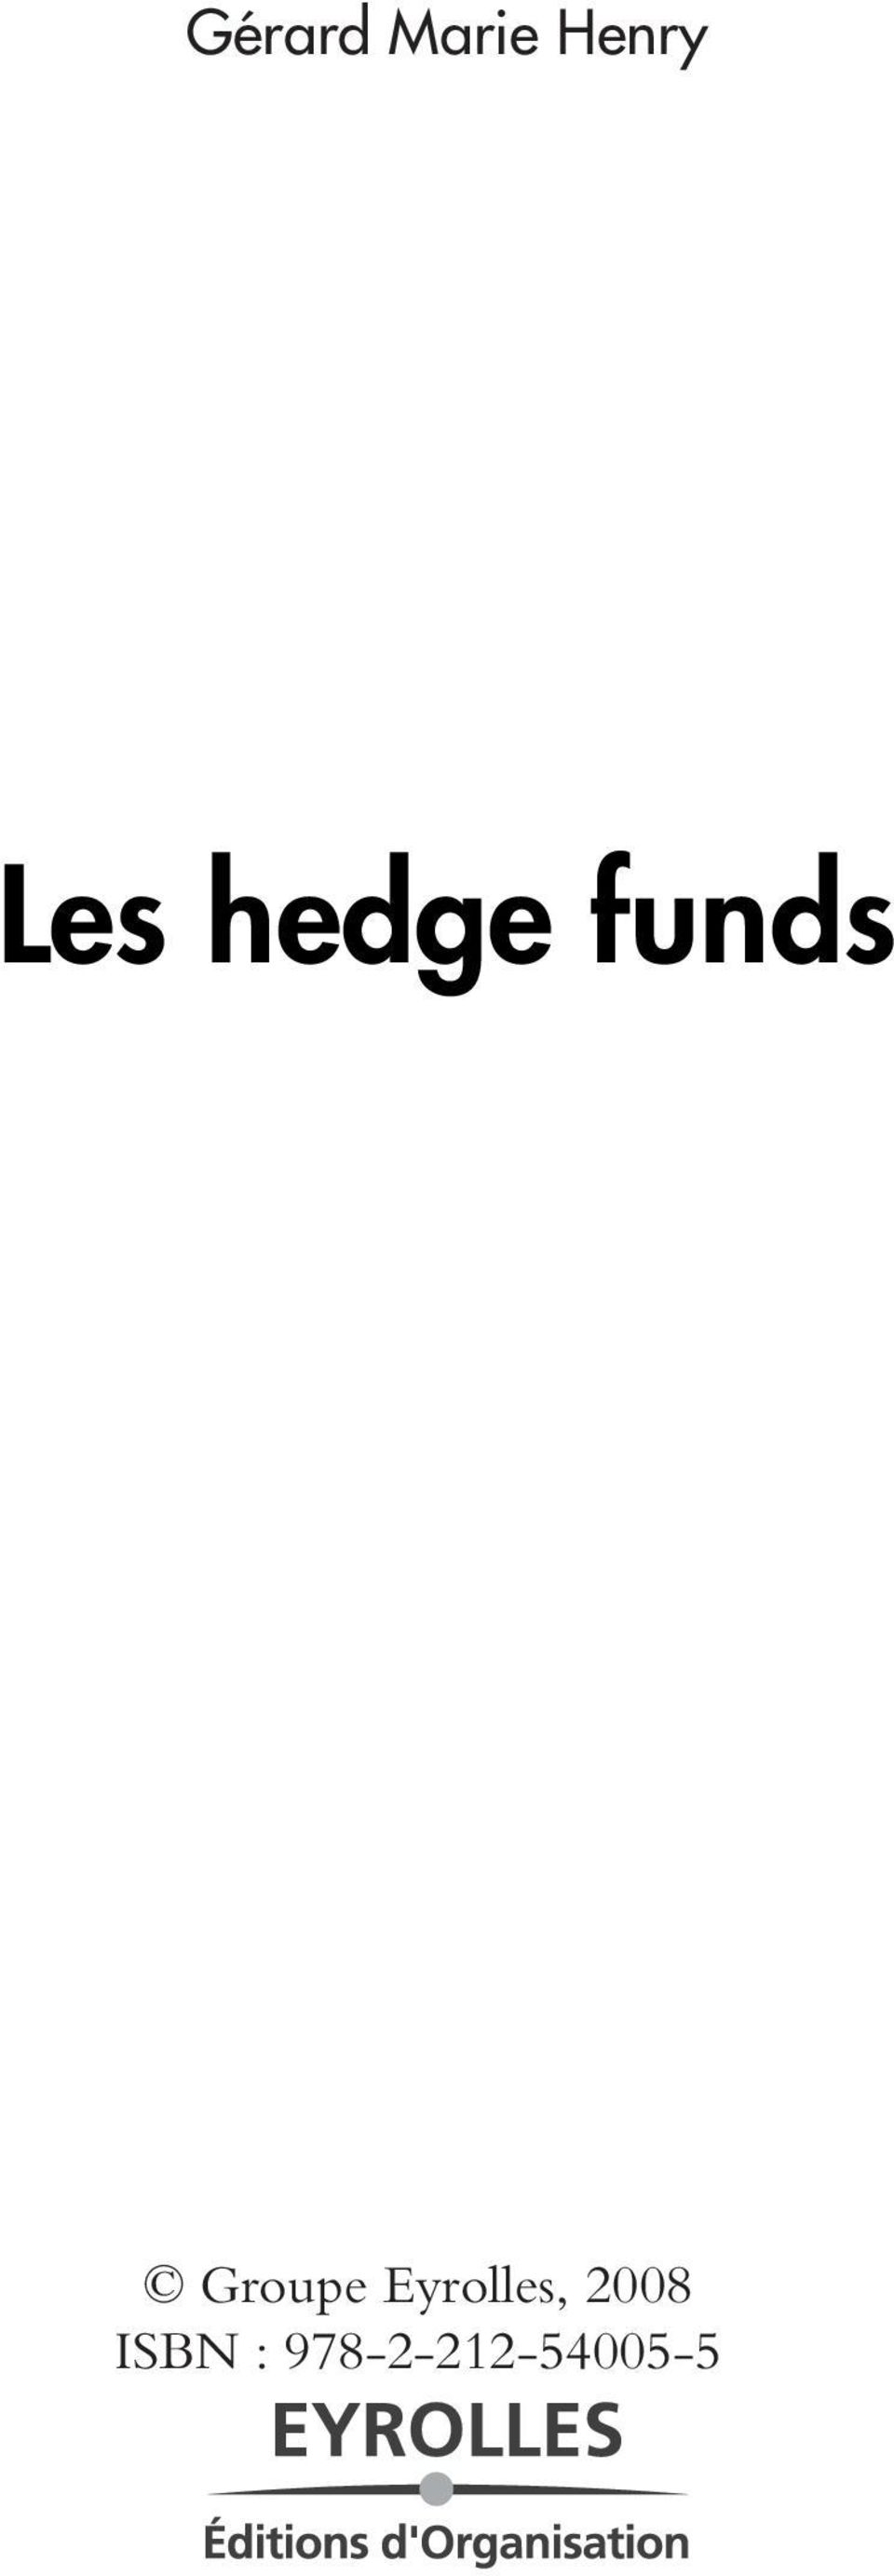 funds, 2008 ISBN